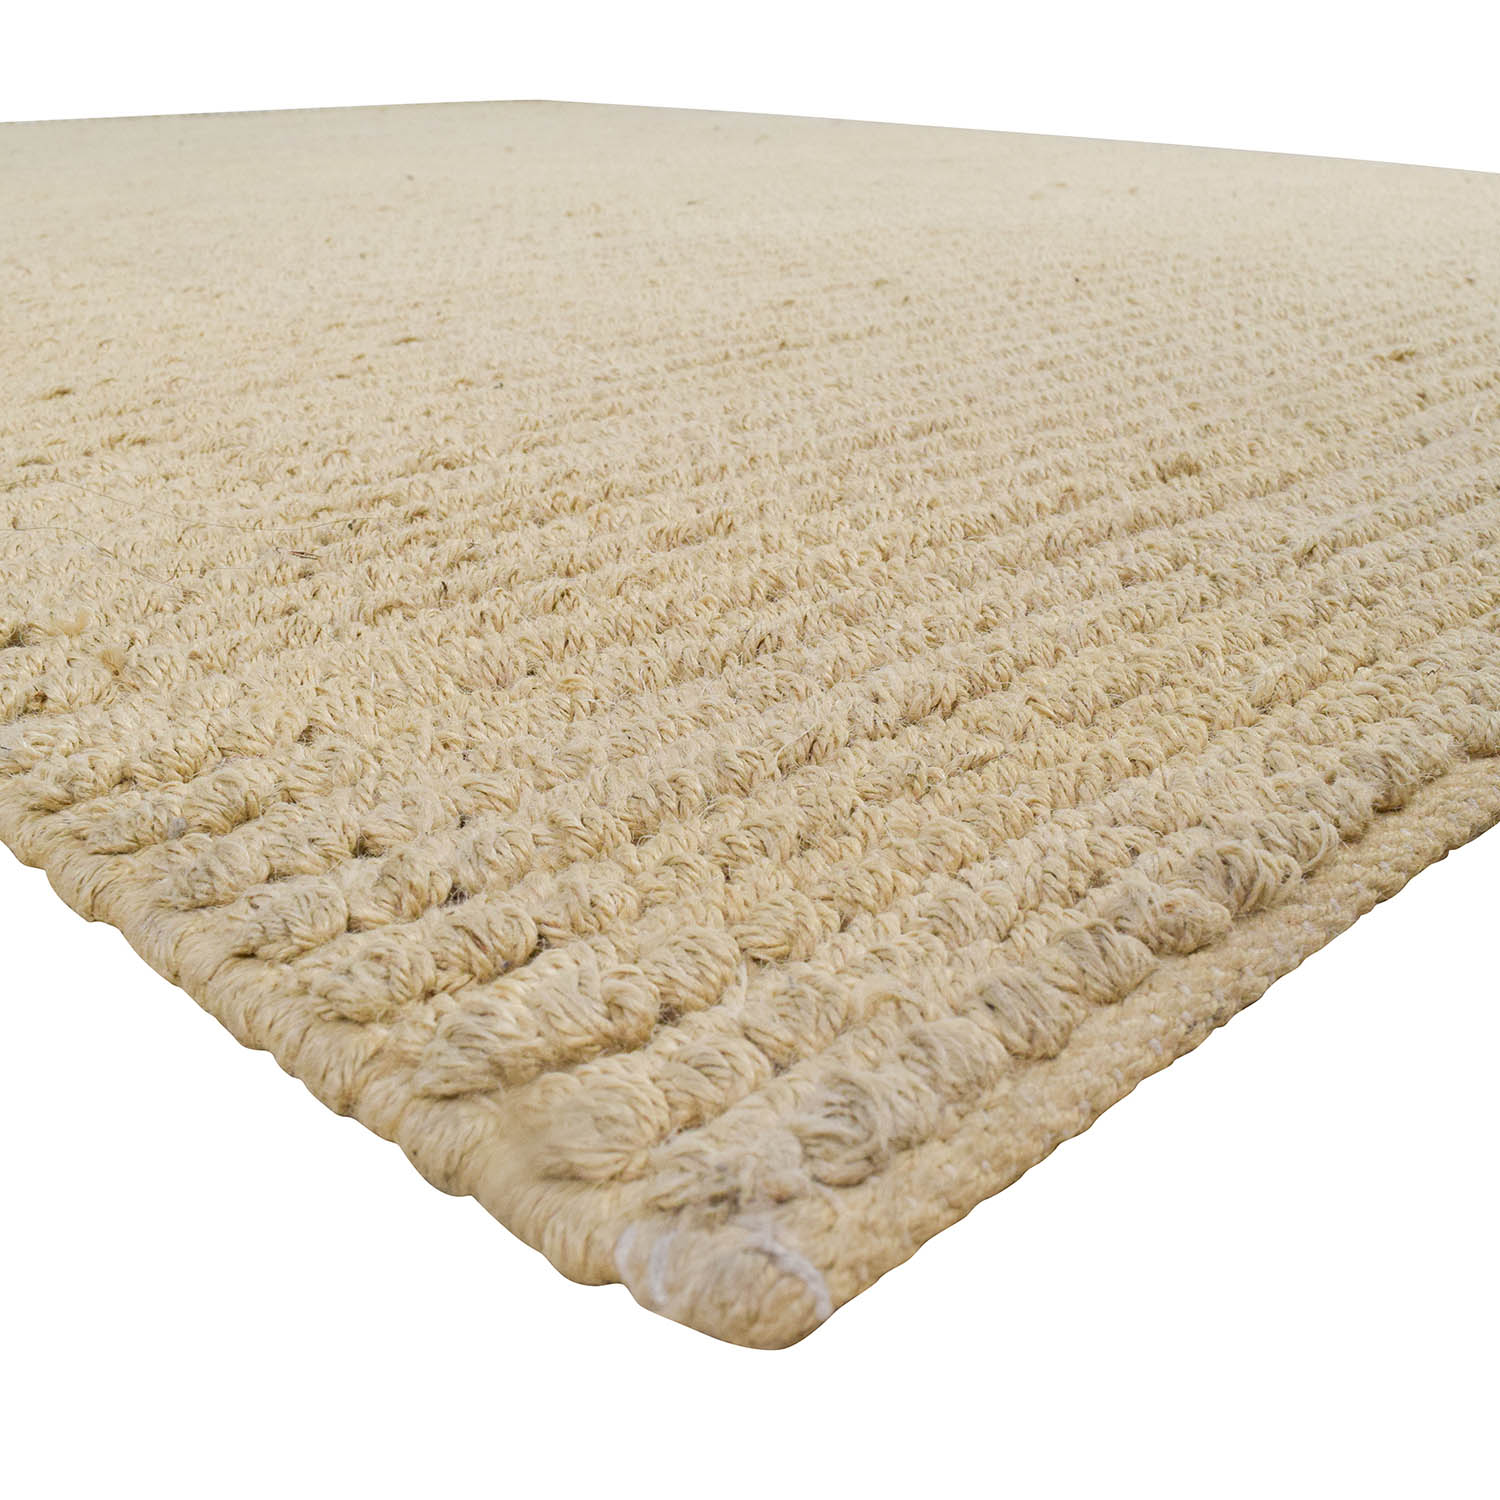 Restoration Hardware Rugs Restoration Hardware Rugs In Bedroom Modern With Dark Stained Wood